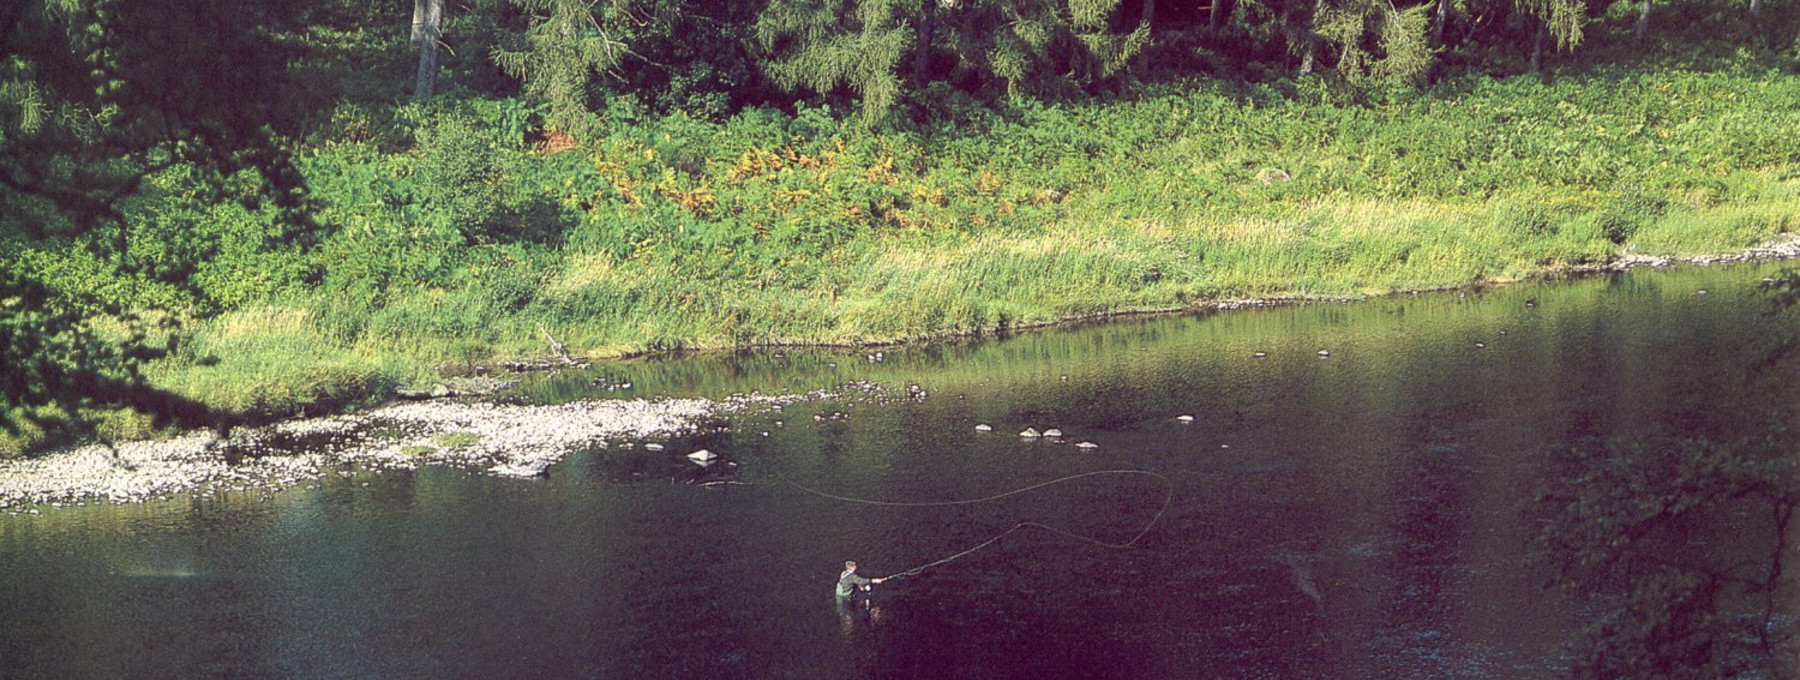 Fly fishing on the River Tay at Murthly estate - Fly fishing is ideal along the River Tay at Murthly Estate in Perthshire